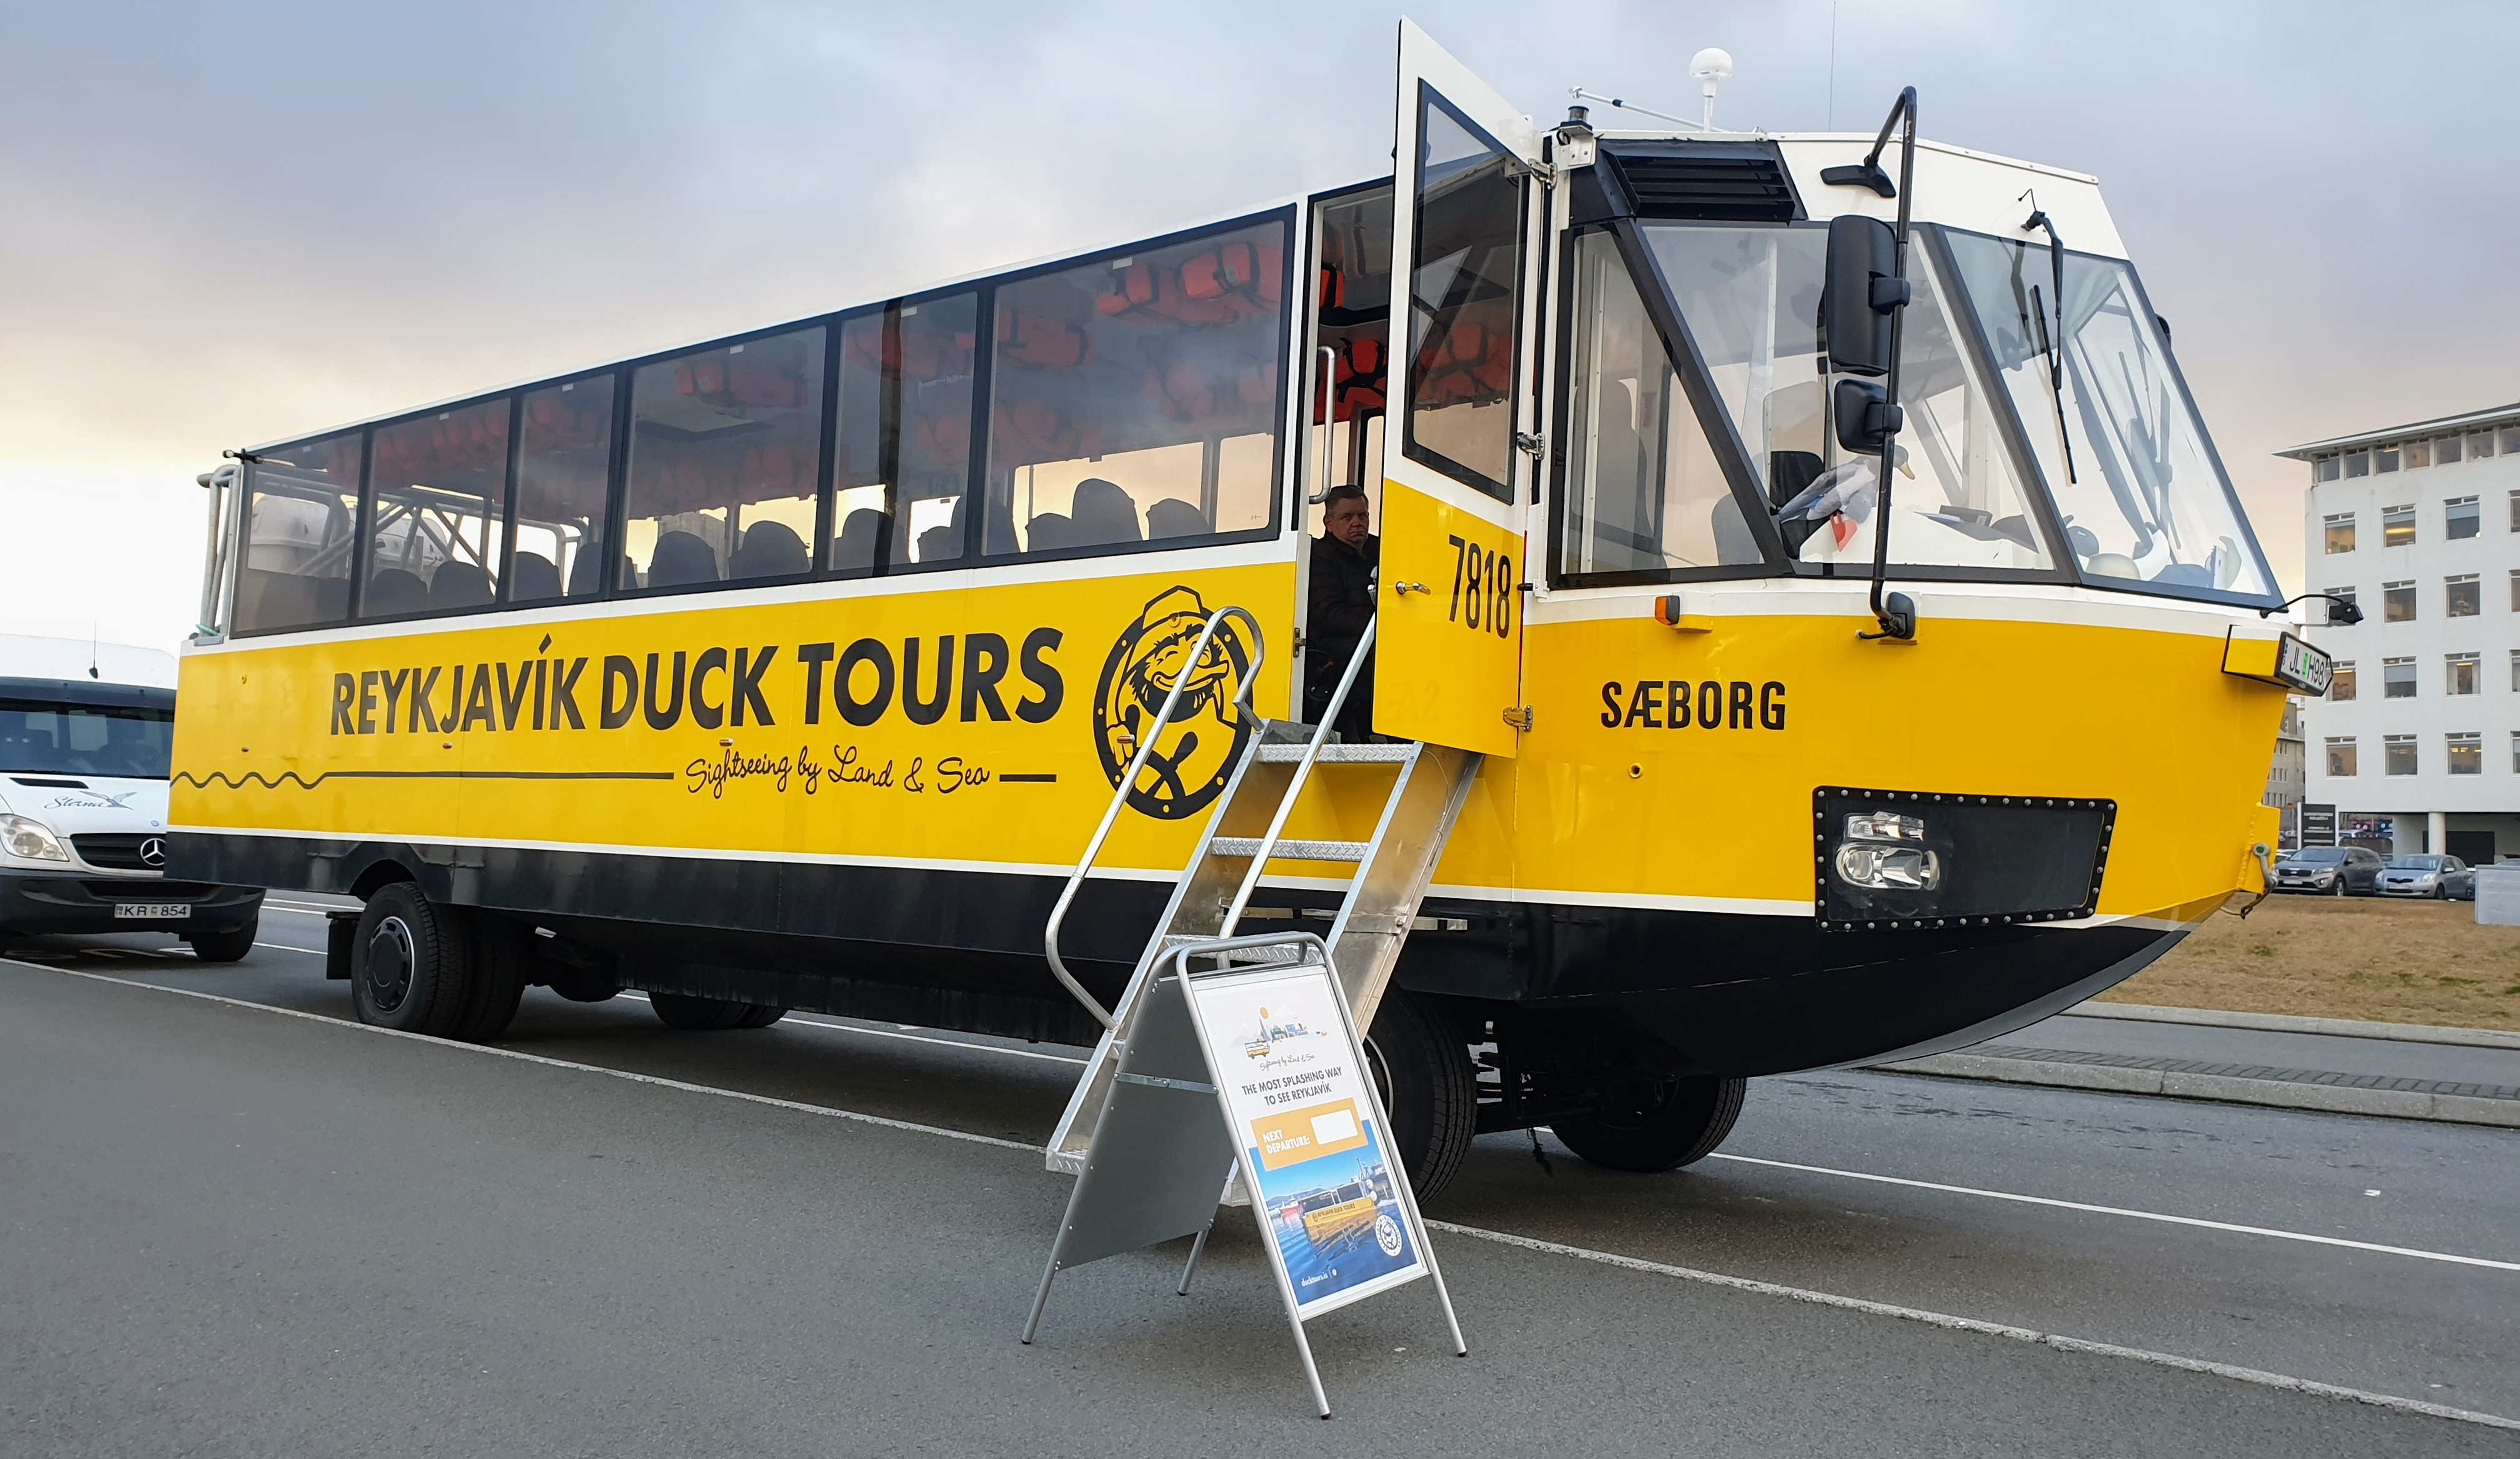 All aboard for the Reykjavik Duck Tours!